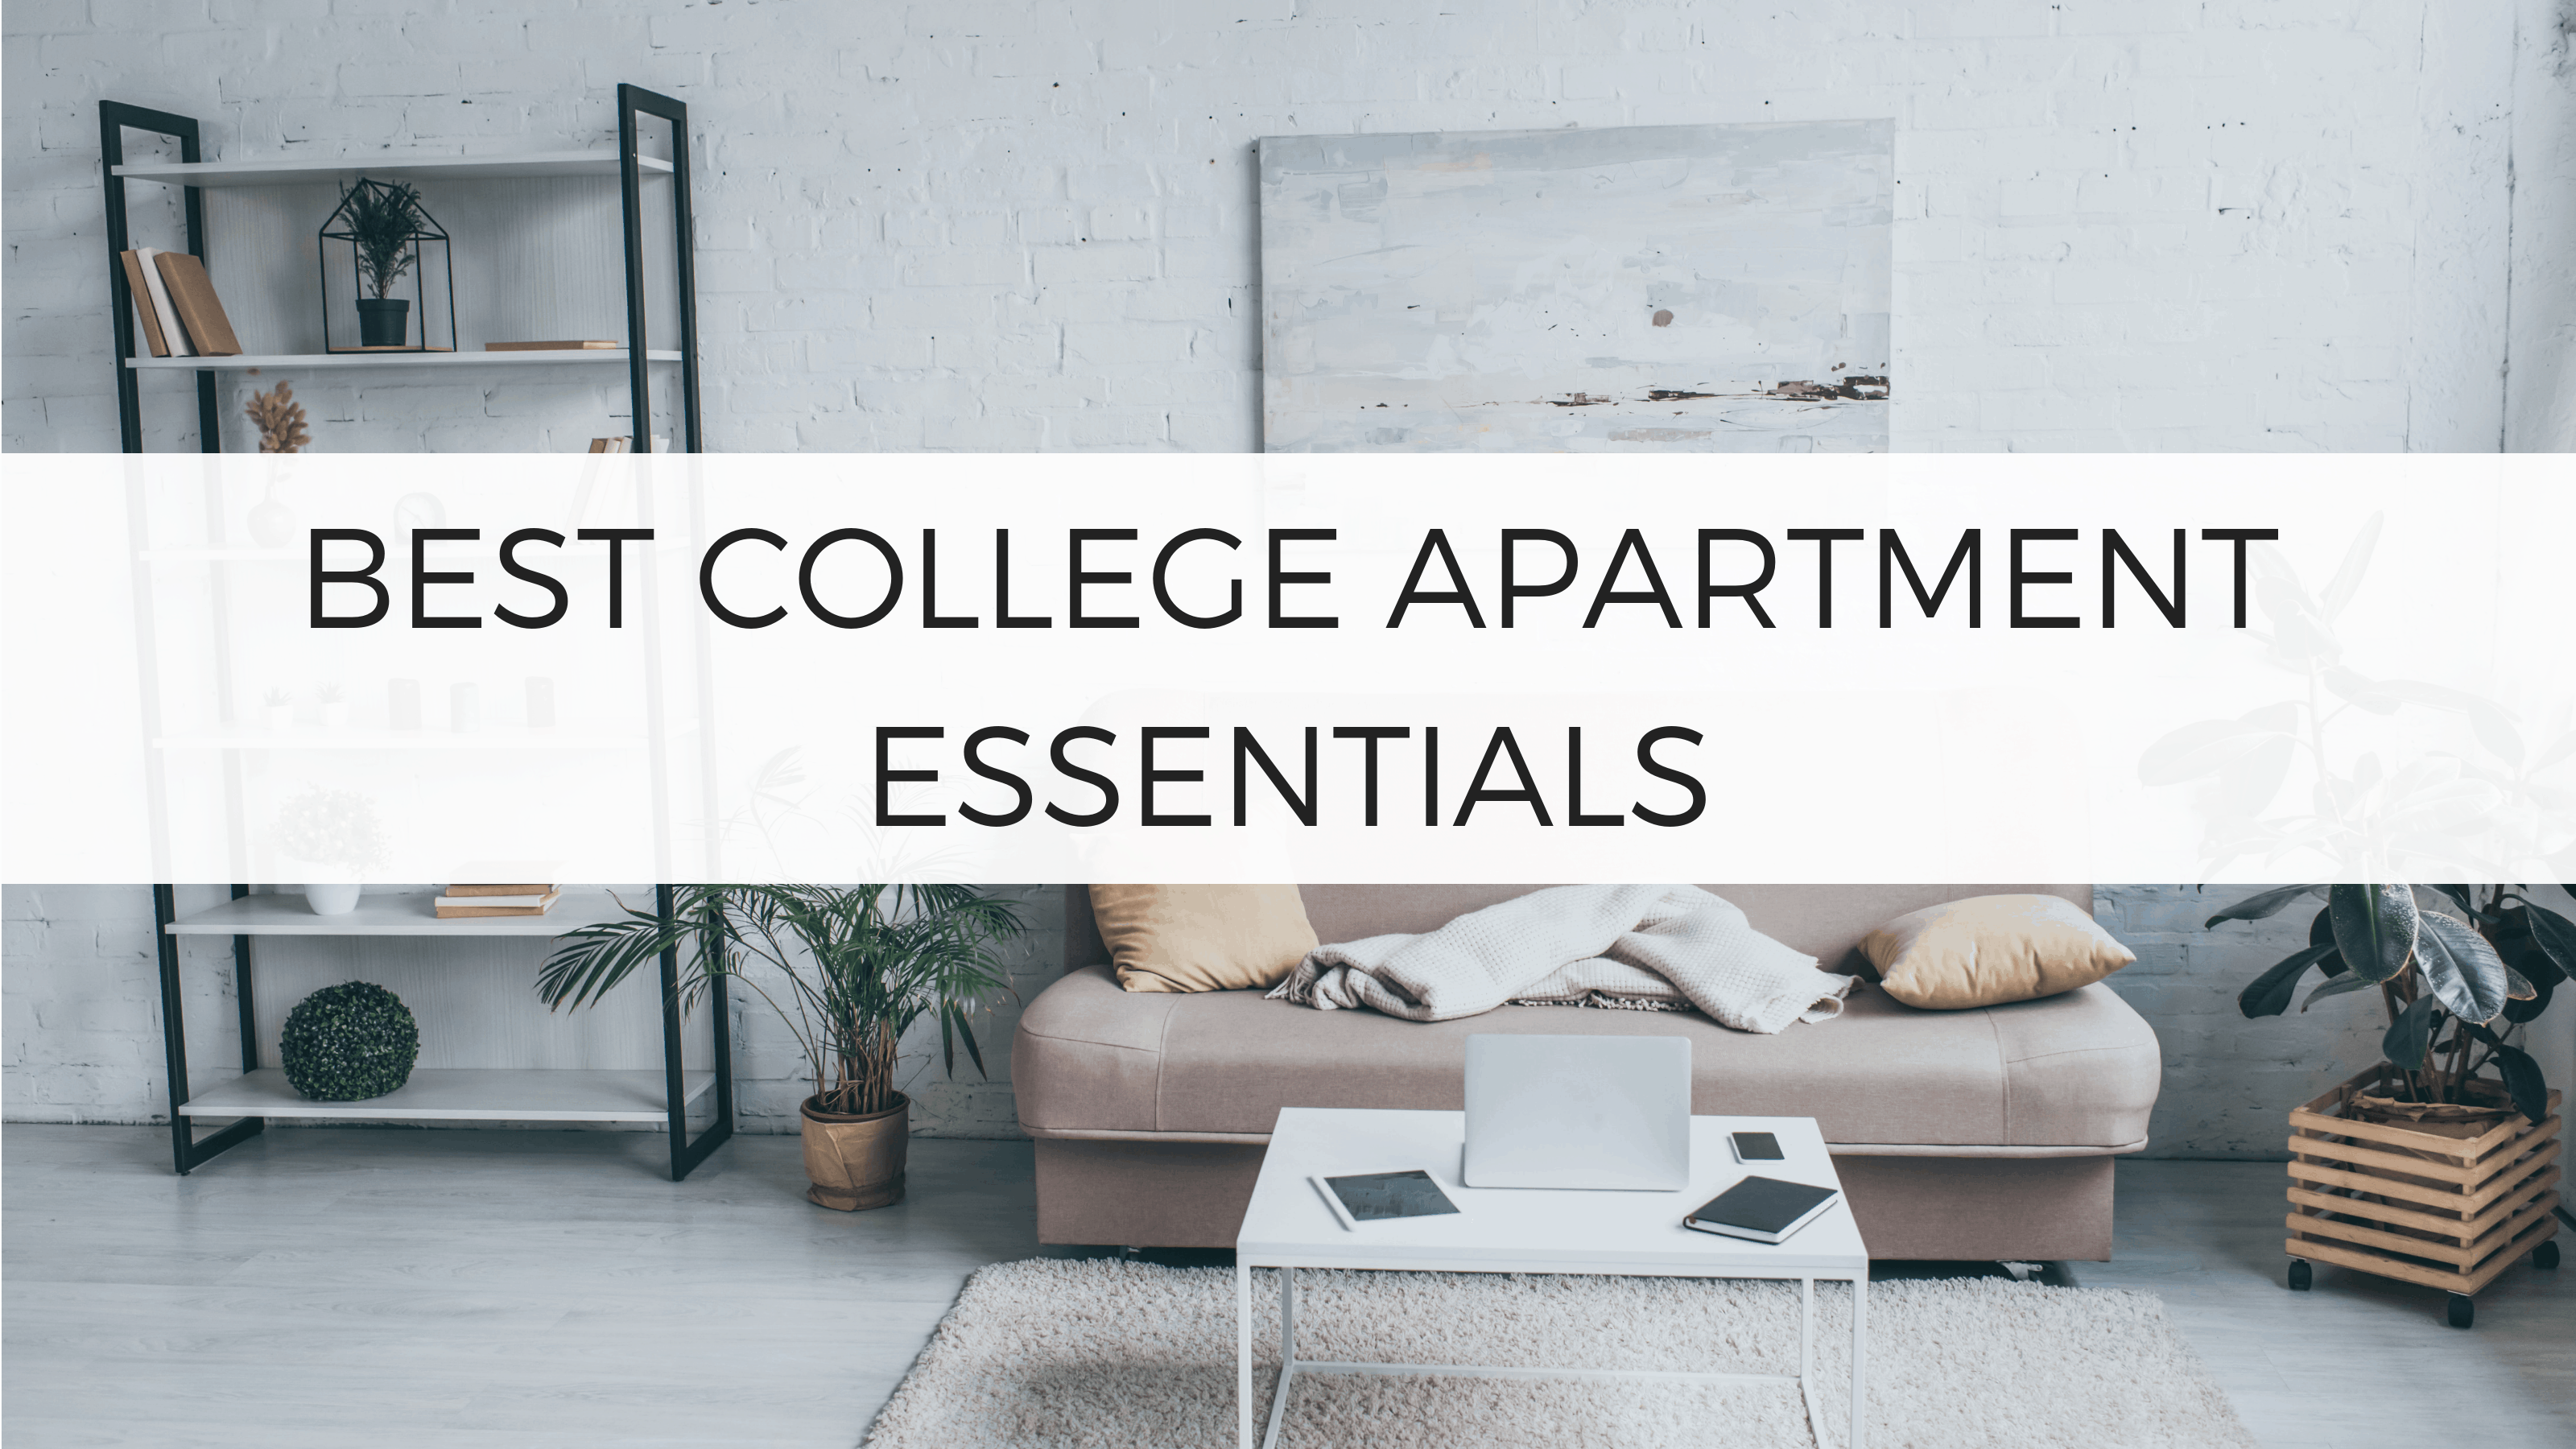 29 College Apartment Essentials You Can\'t Forget - By Sophia Lee